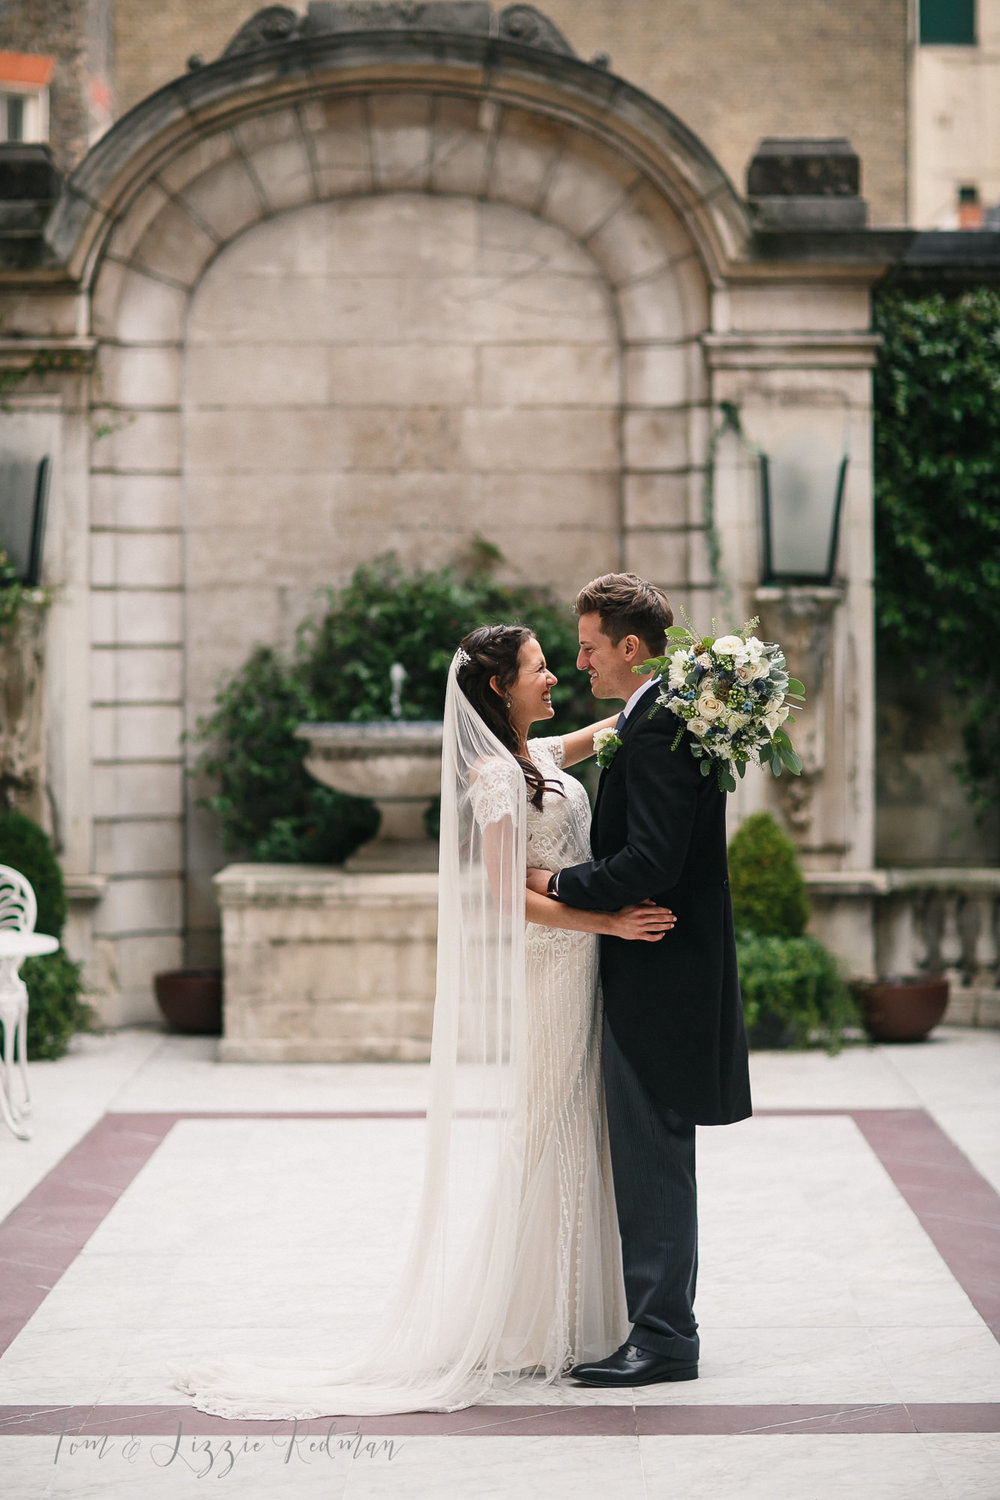 Dartmouth House weddings